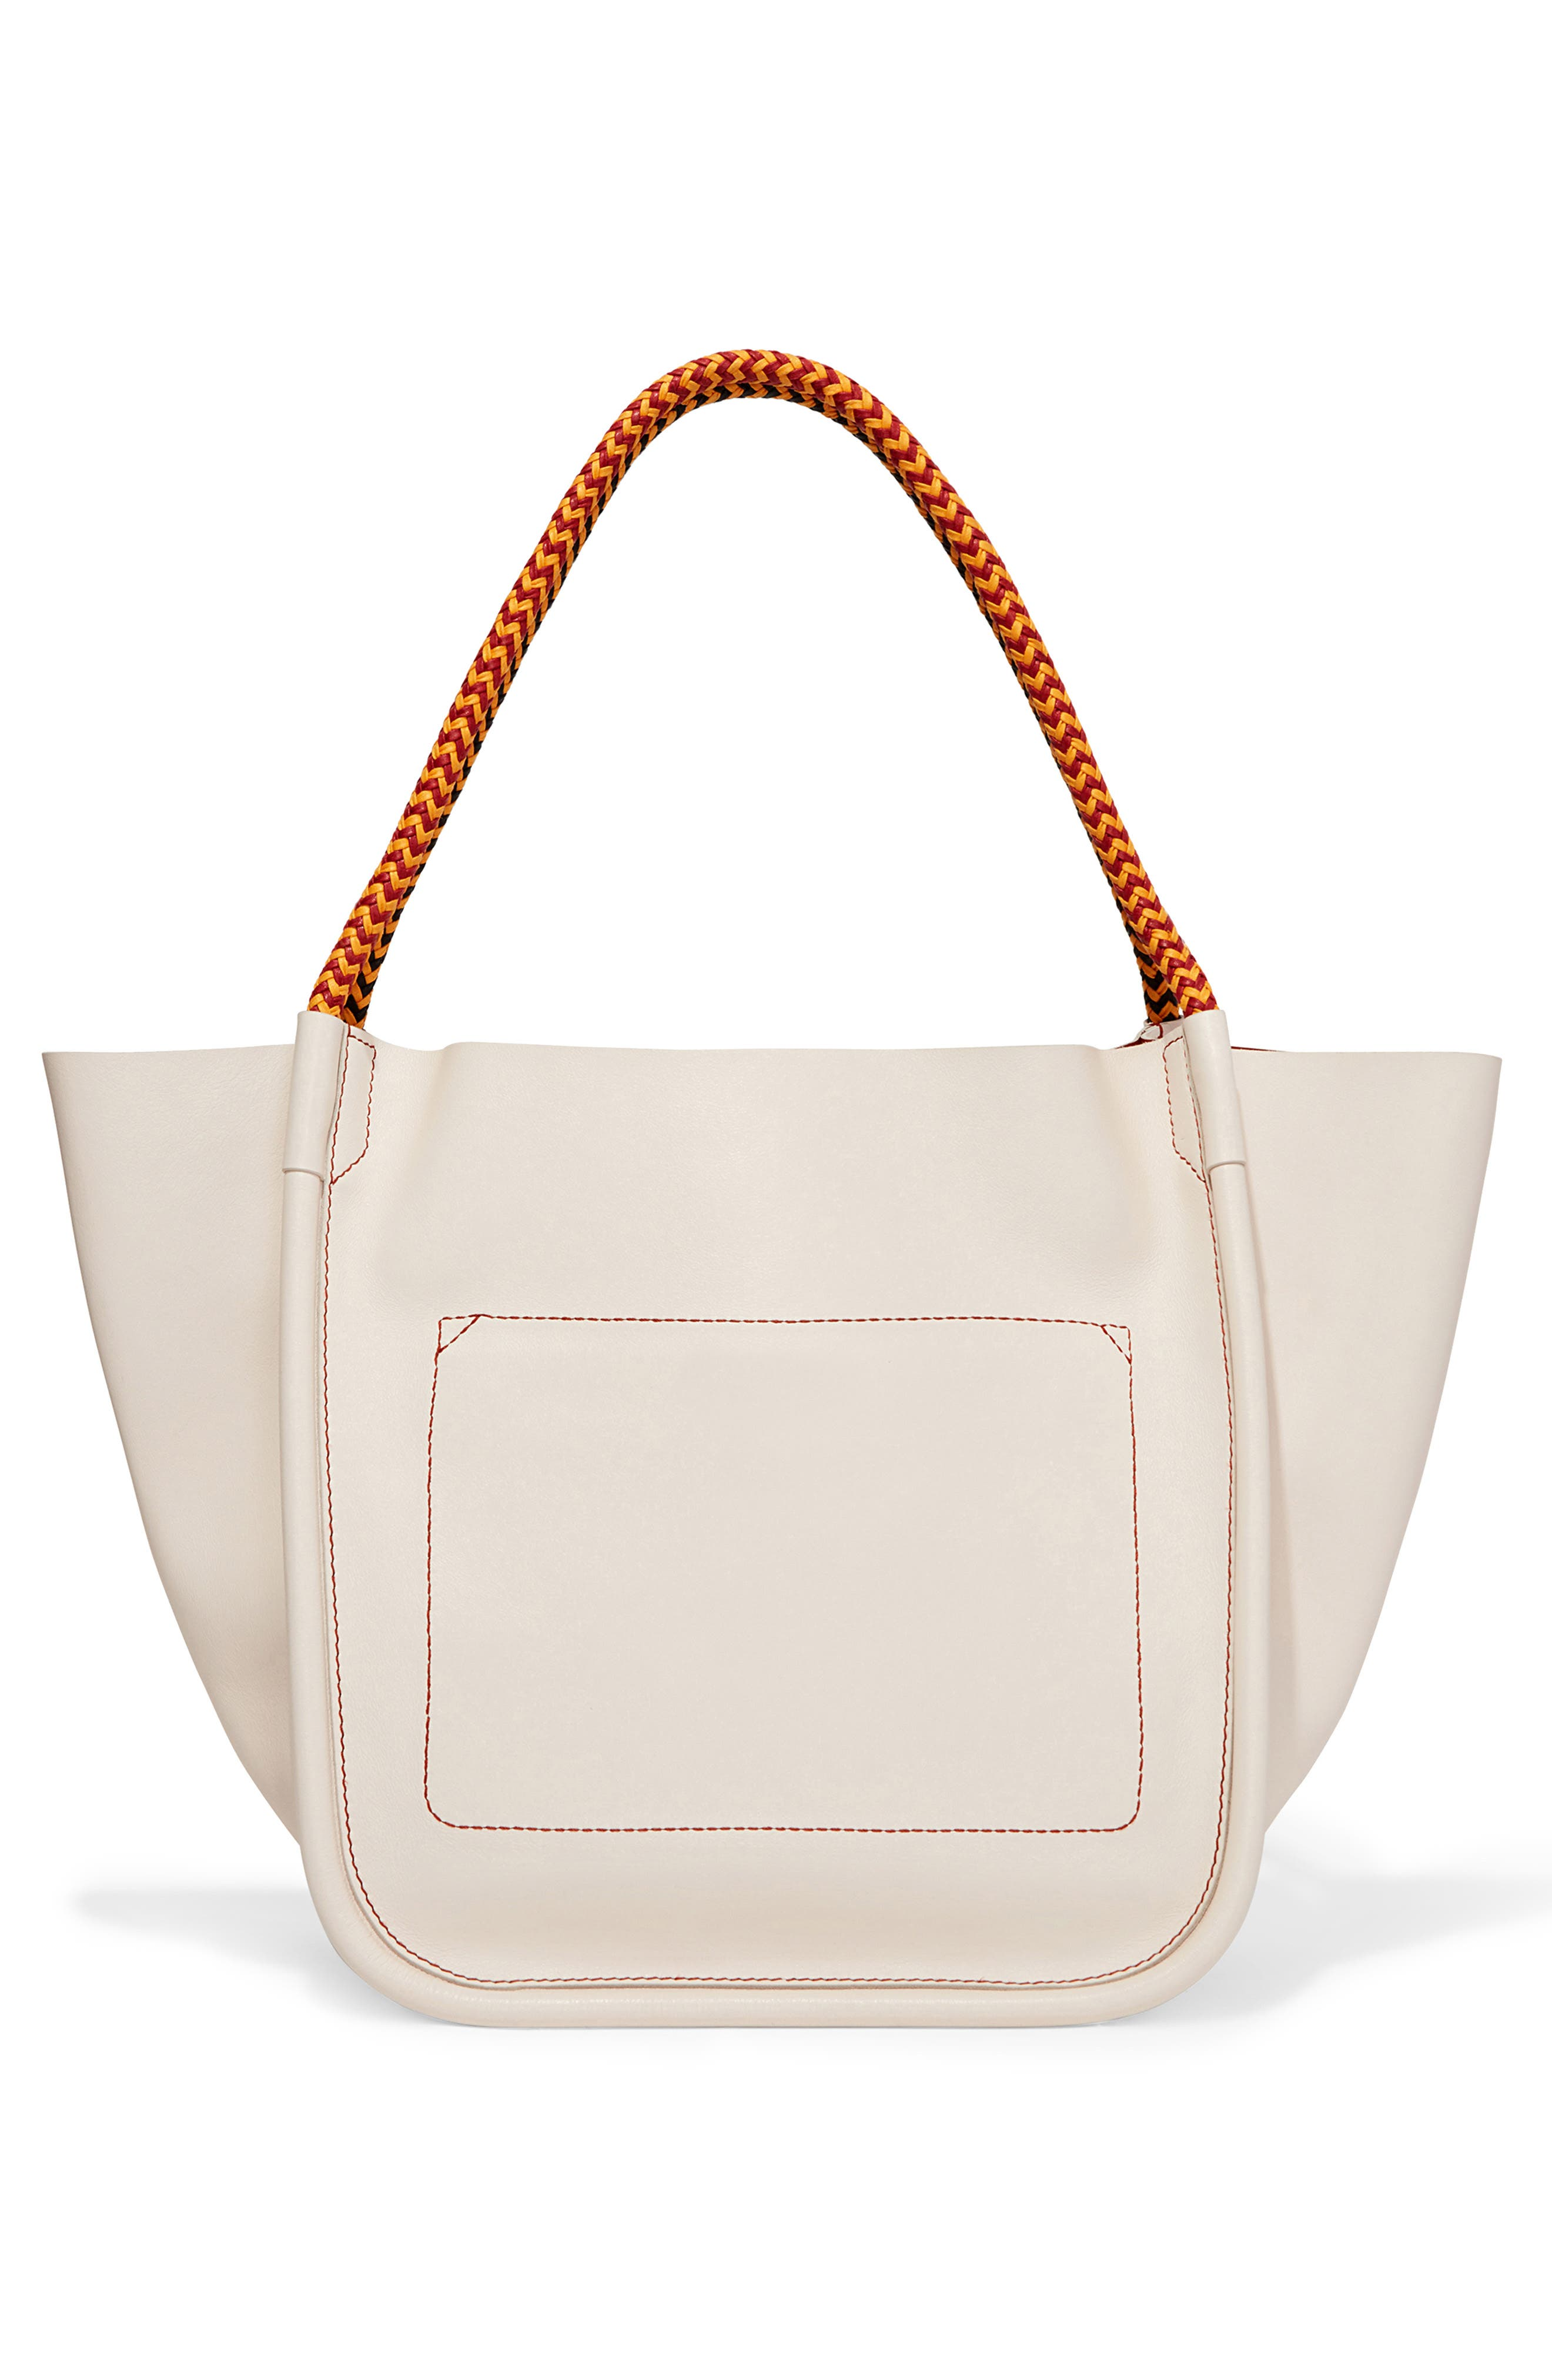 PROENZA SCHOULER, Large Calfskin Leather Tote, Alternate thumbnail 3, color, CLAY